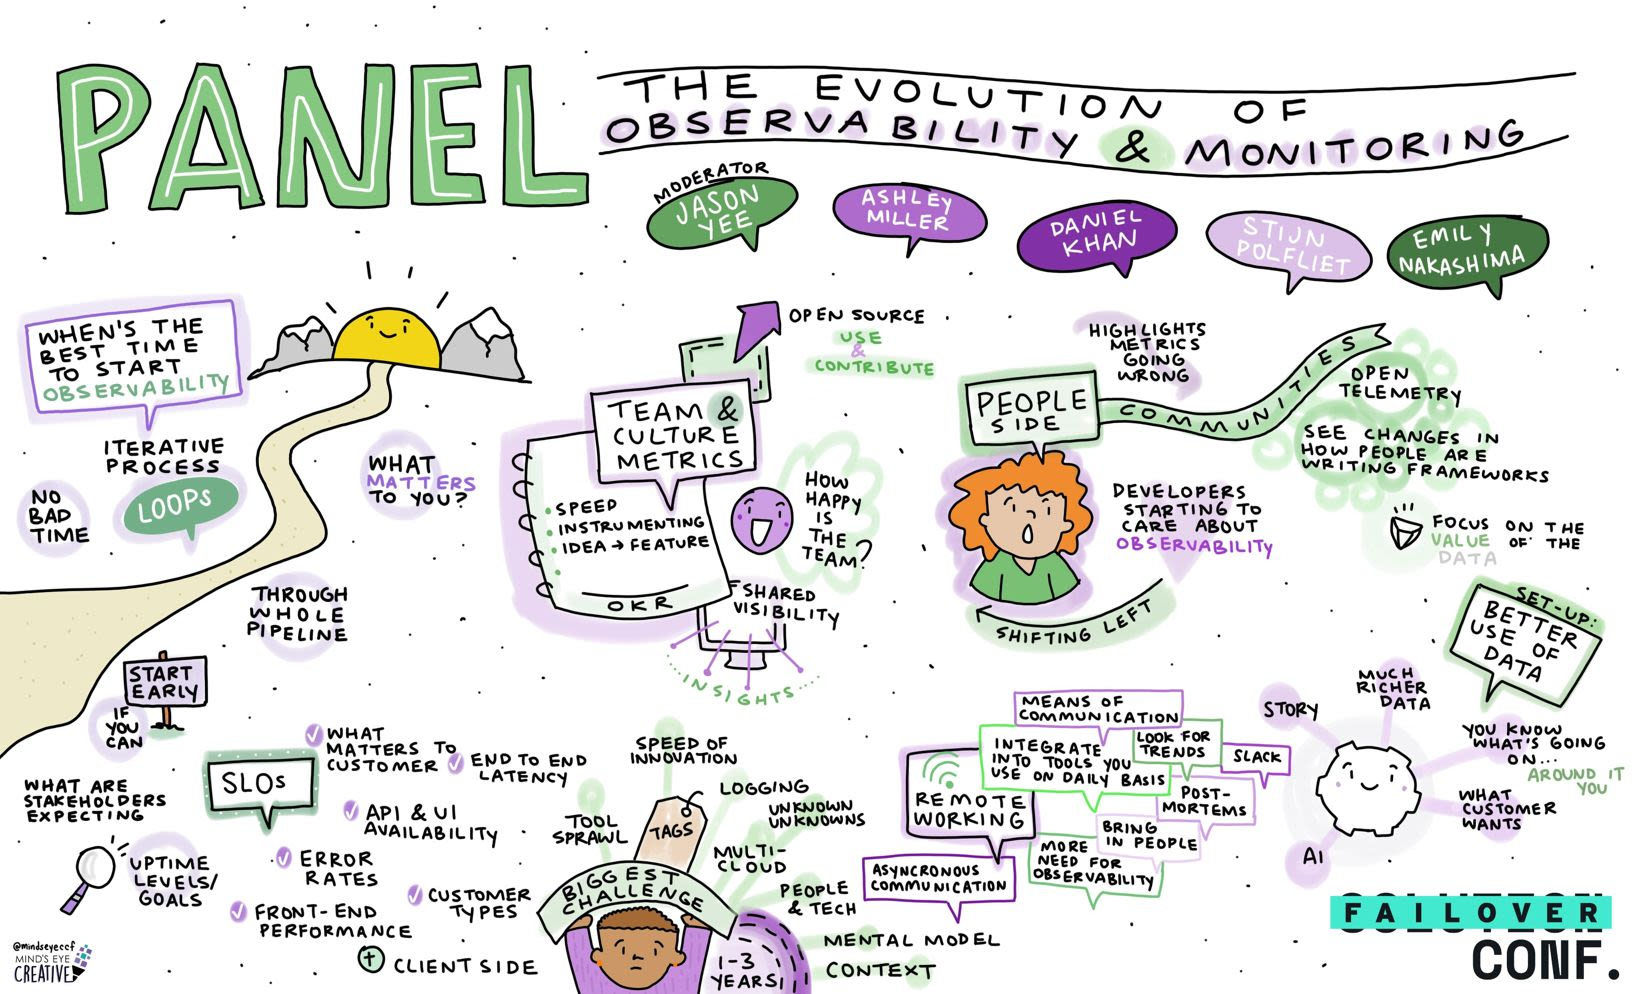 The evolution of observability and monitoring panel